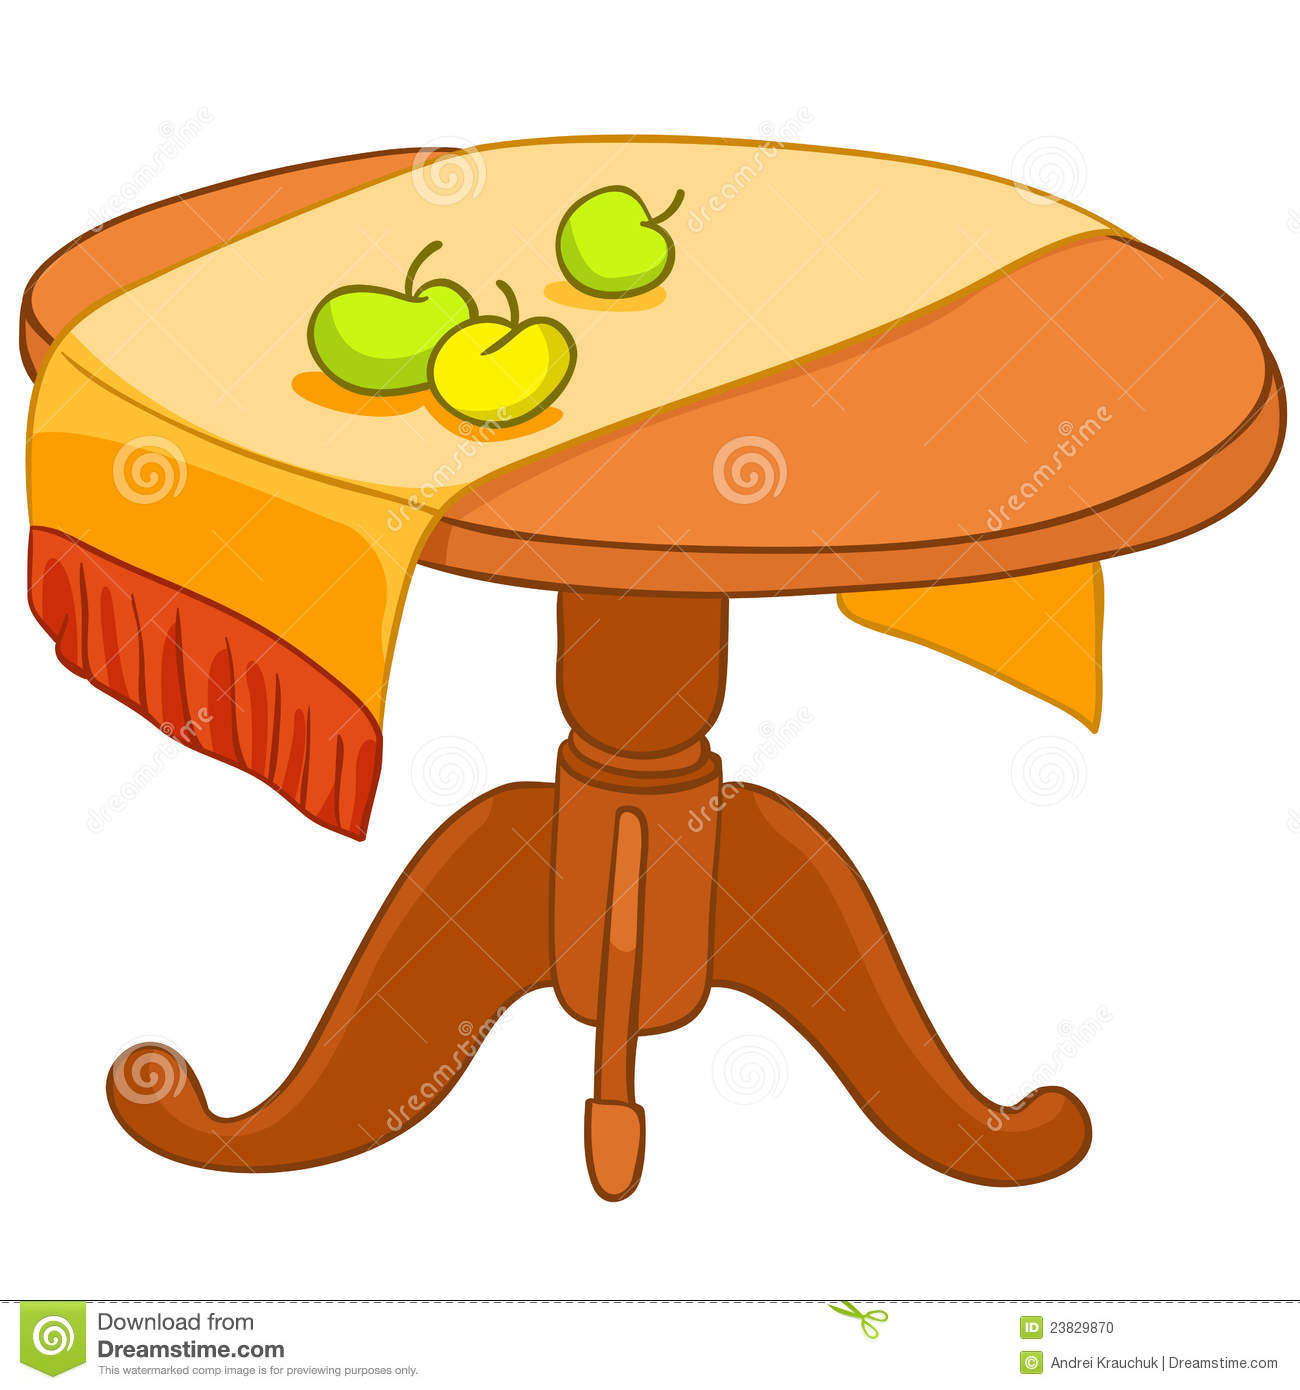 Cartoon Kitchen Furniture: Cartoon Home Furniture Table Stock Vector